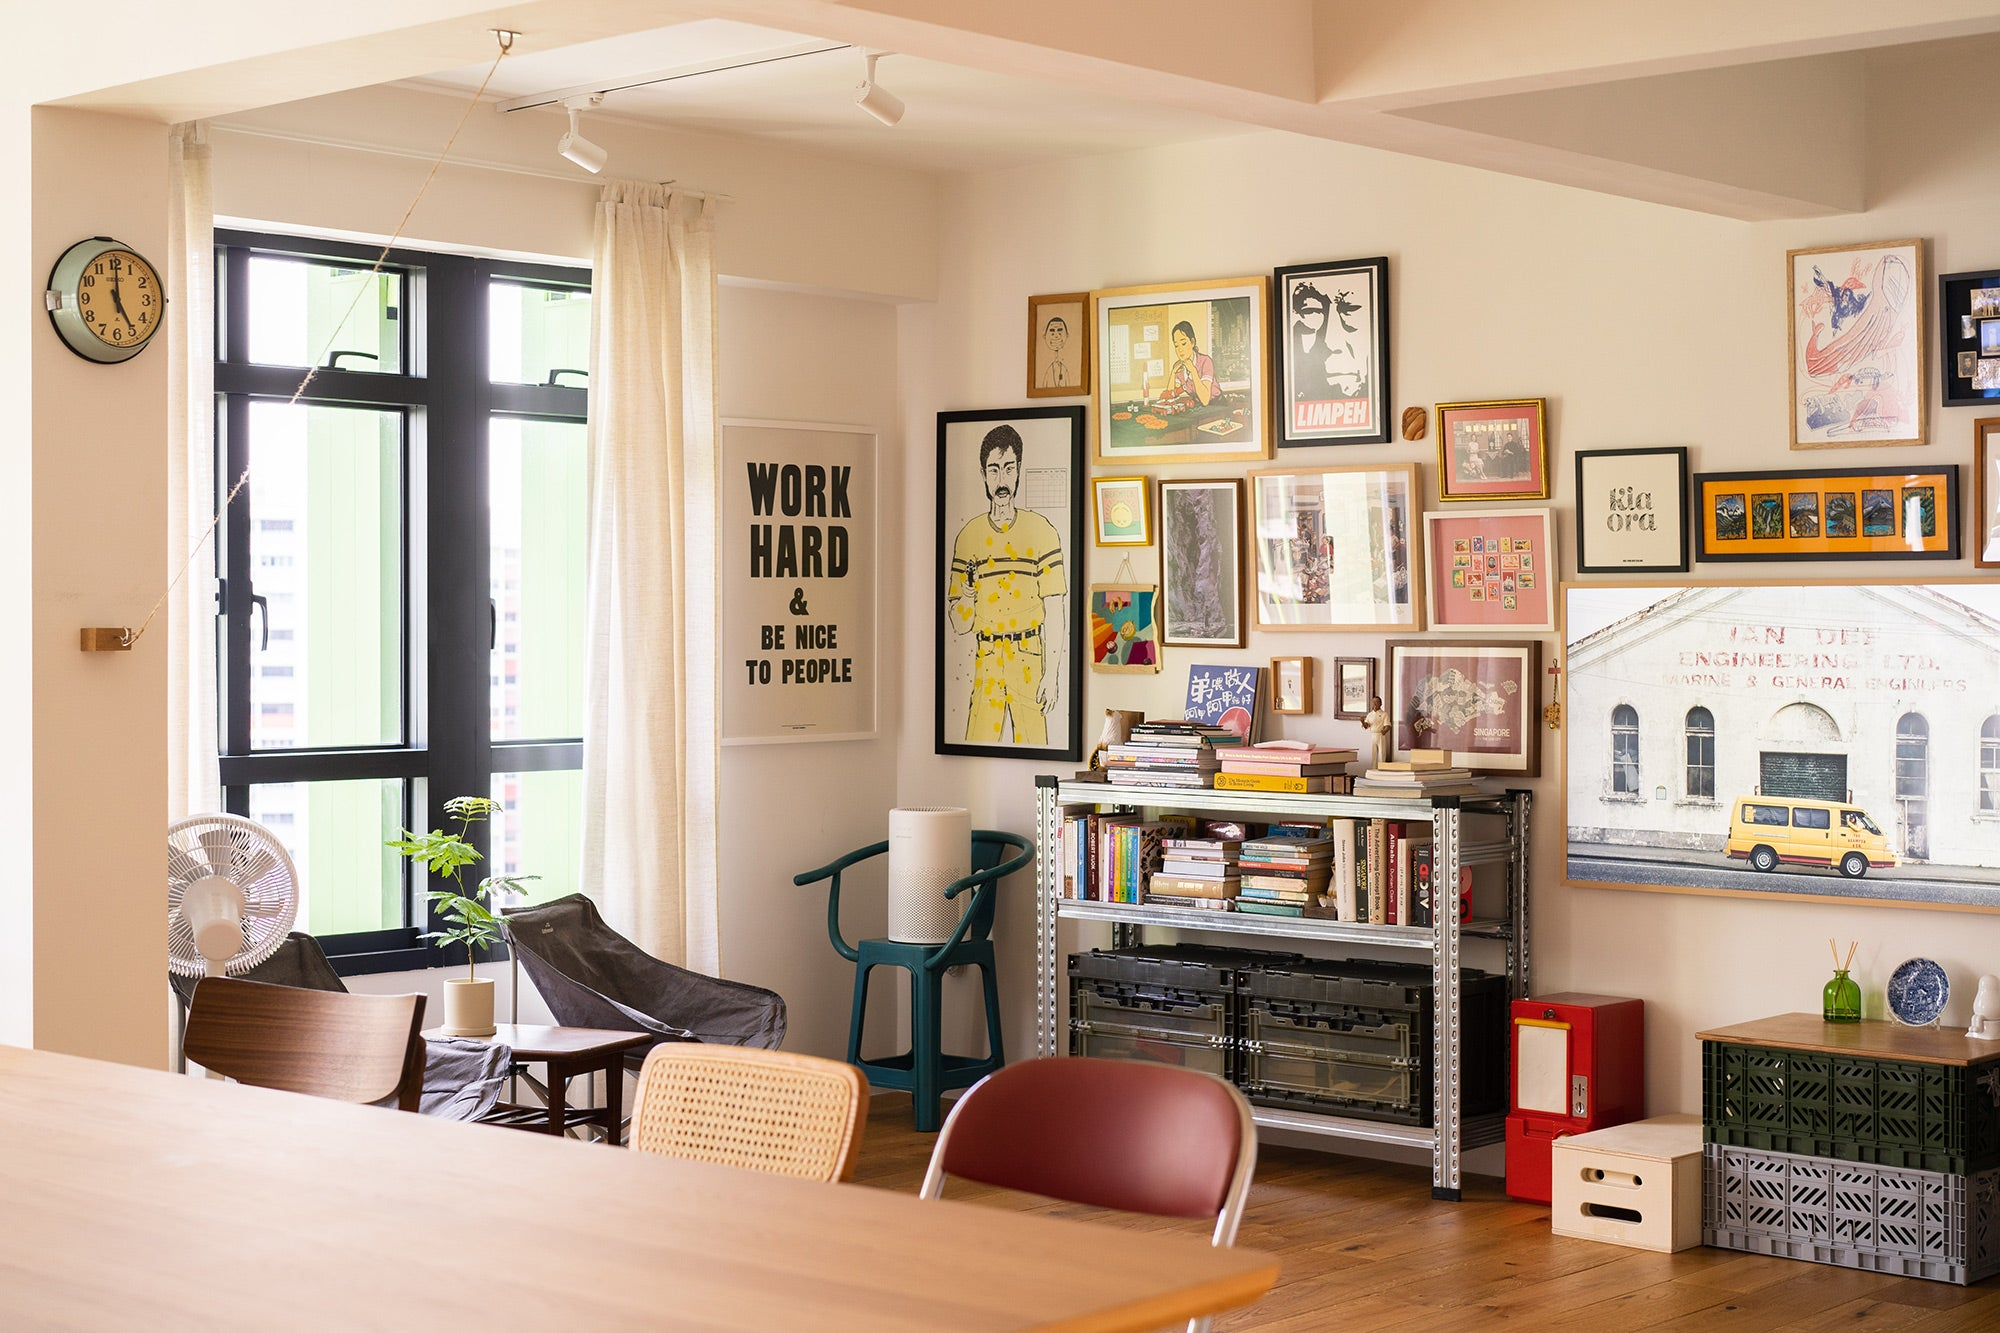 BTO Story Singapore Flat Apartment Interior Gallery Wall Ideas Inspiration Woody